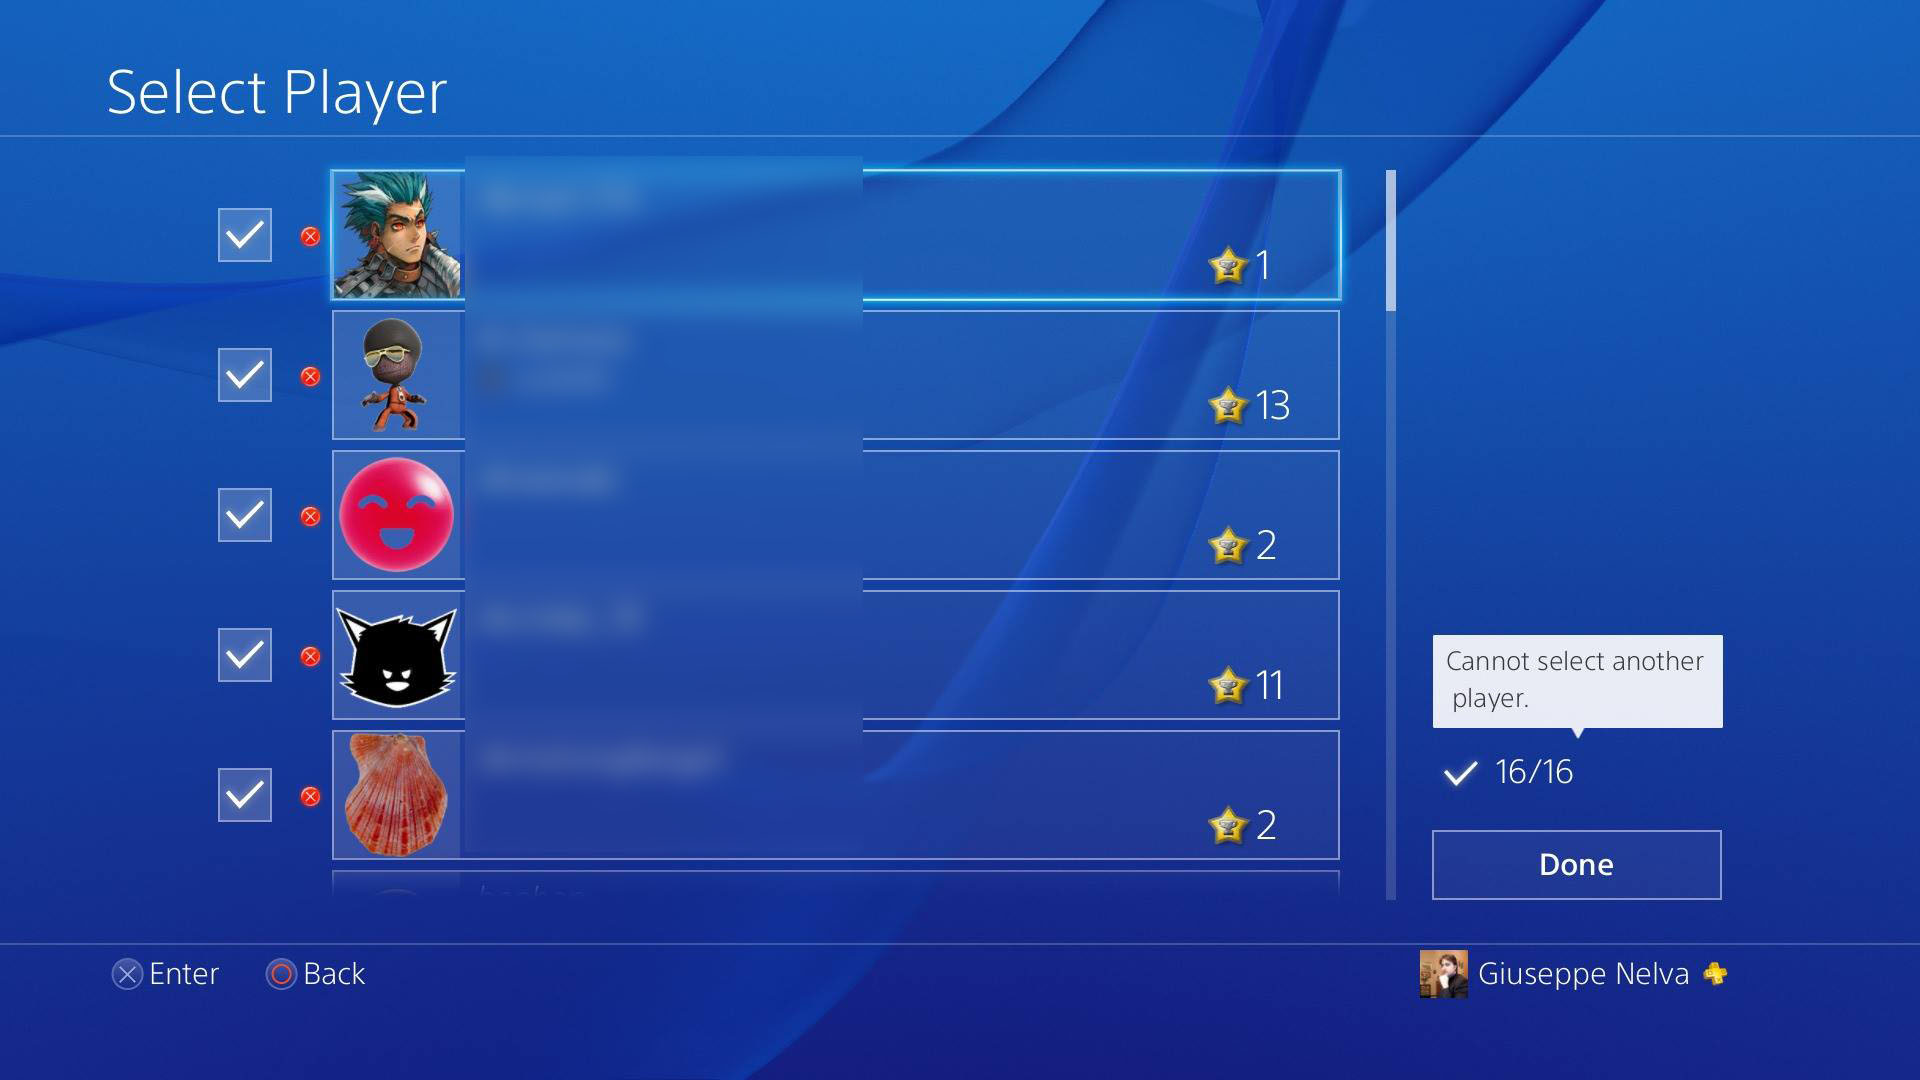 PS4 chat